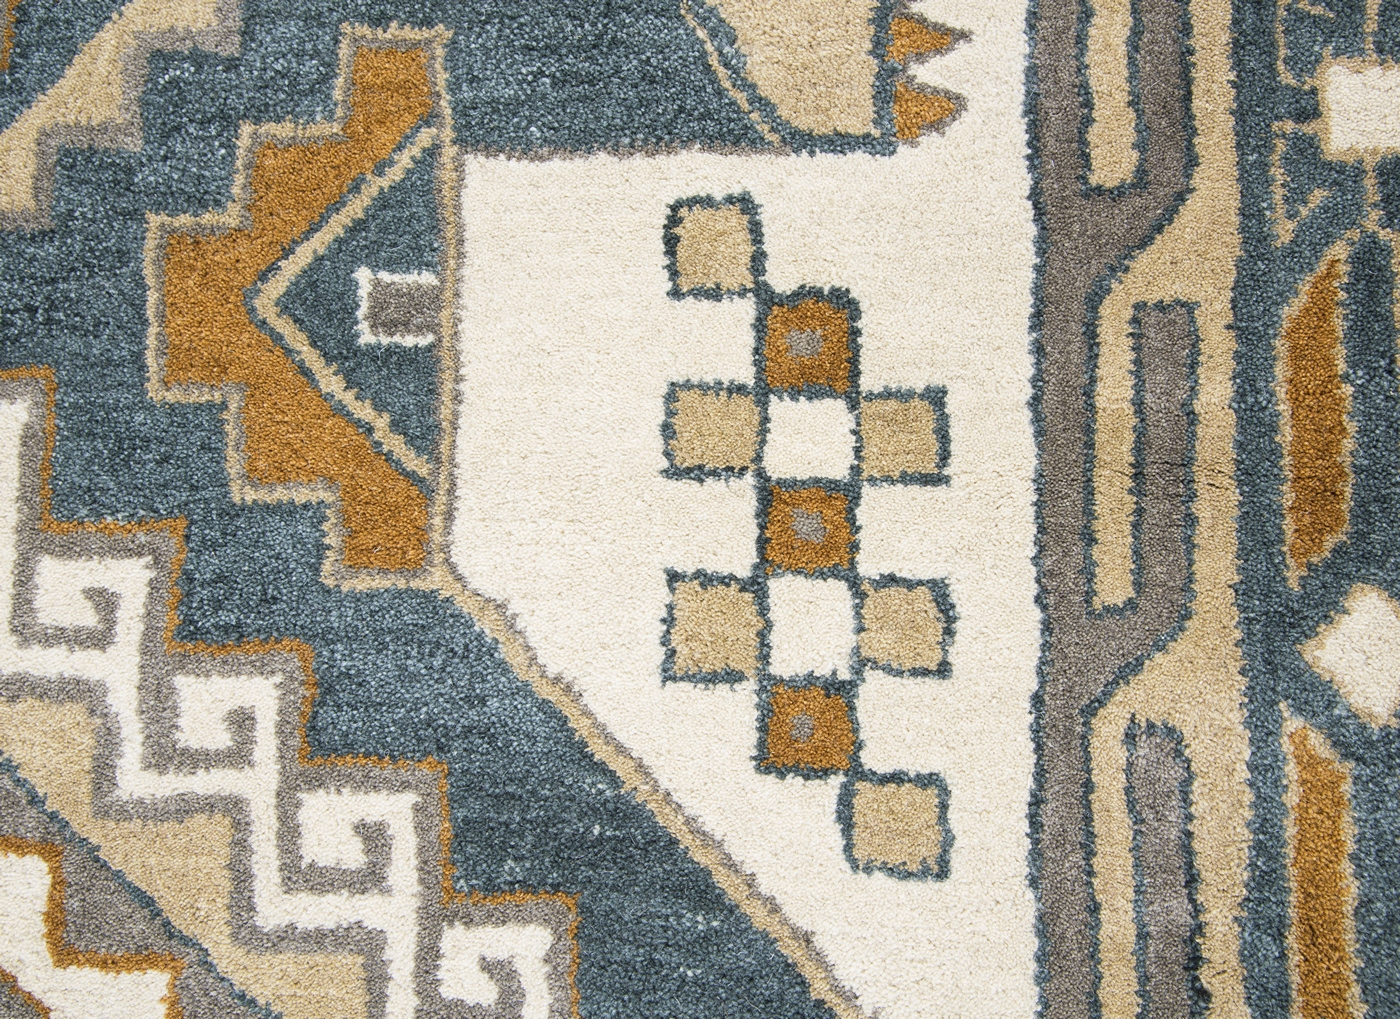 Grey Tan And Brown Area Rug: Southwest Ornate Aztec Wool Area Rug In Gray & Tan, 9' X 12